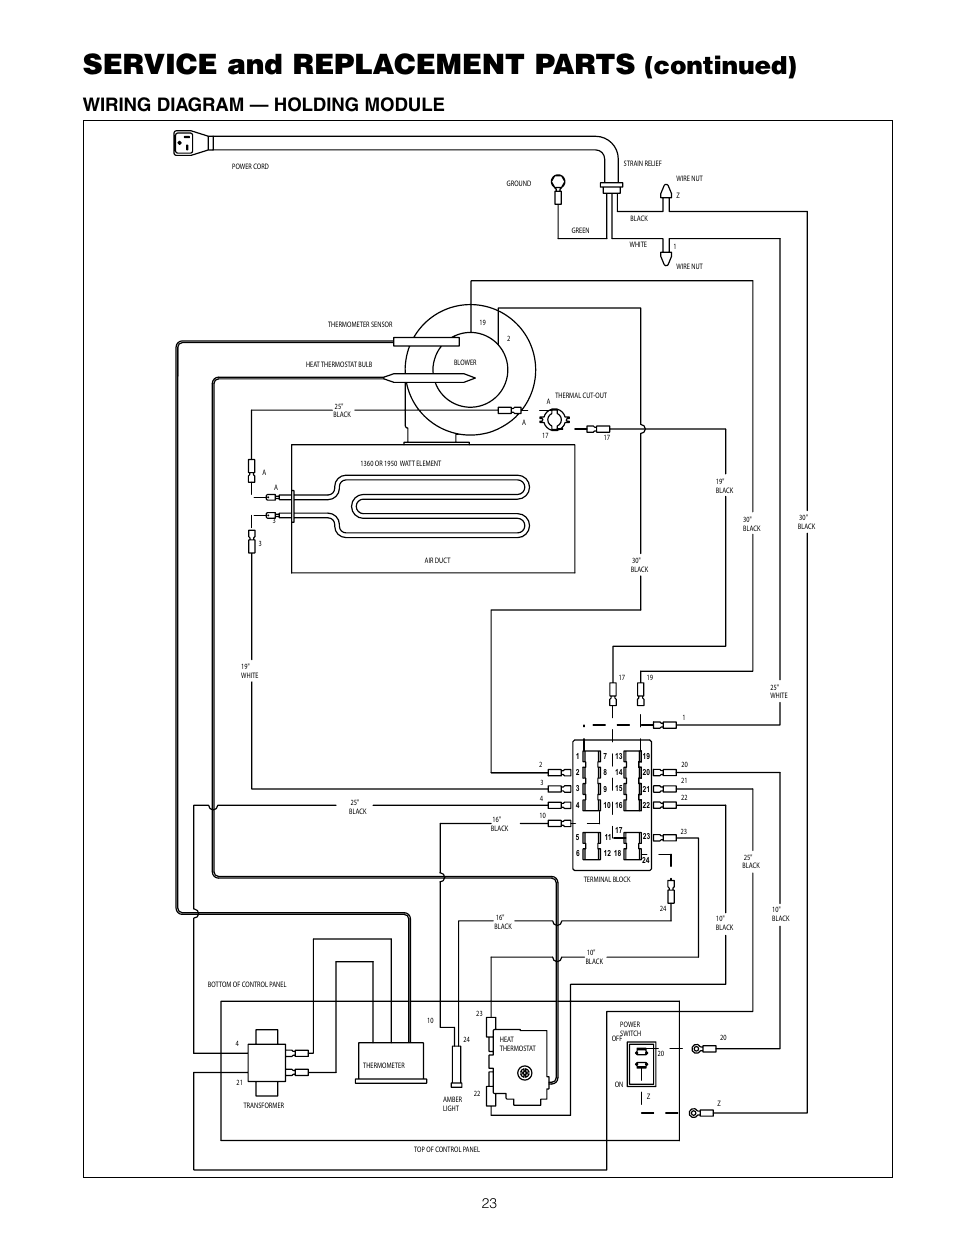 Service And Replacement Parts  Continued   Wiring Diagram  U2014 Holding Module